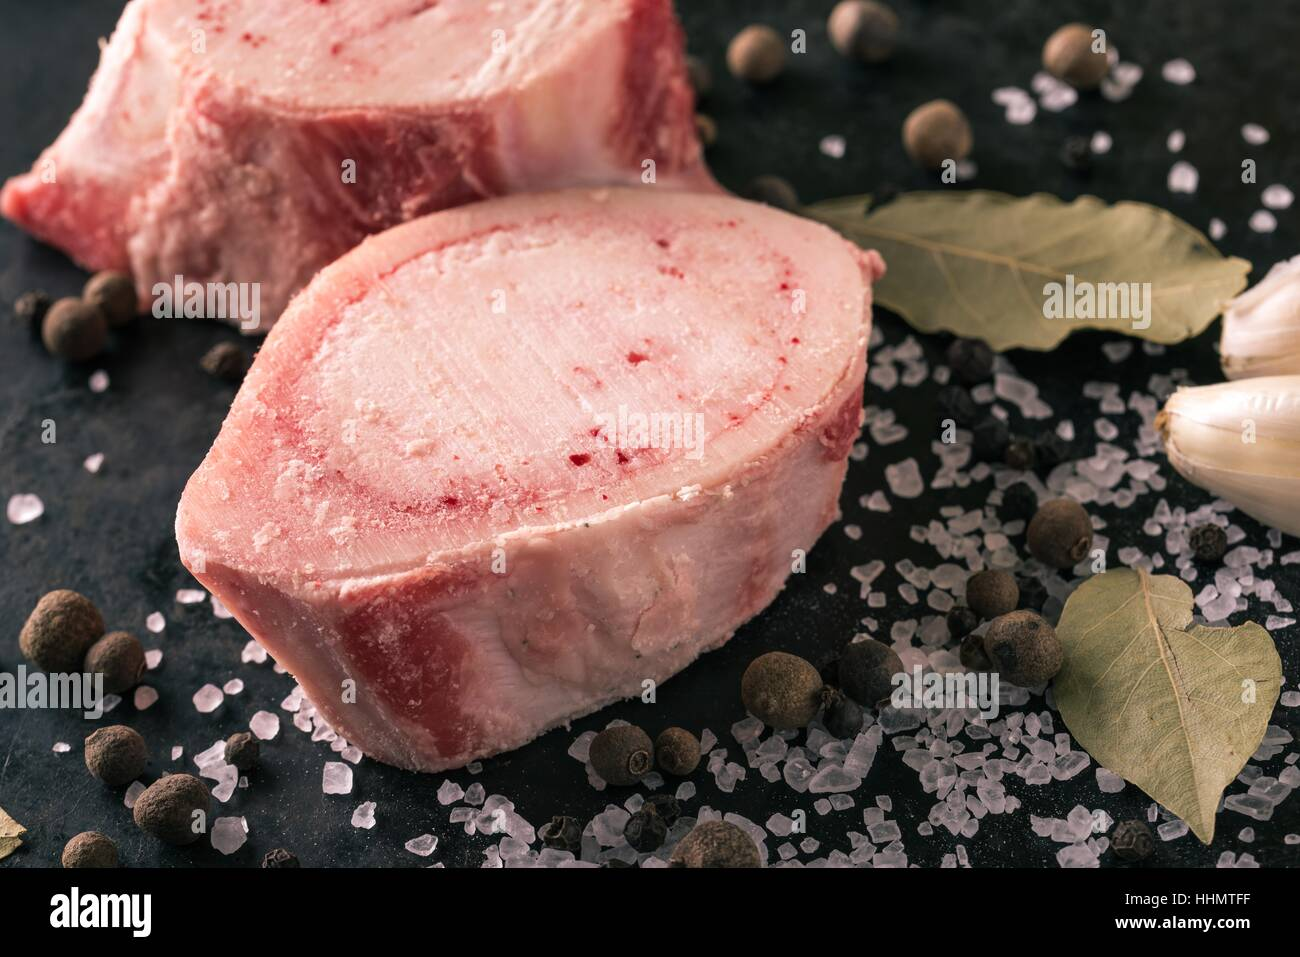 Horizontal photo with two pieces or slices of big marrowbone with few drops of blood and meat on side. Bones are - Stock Image